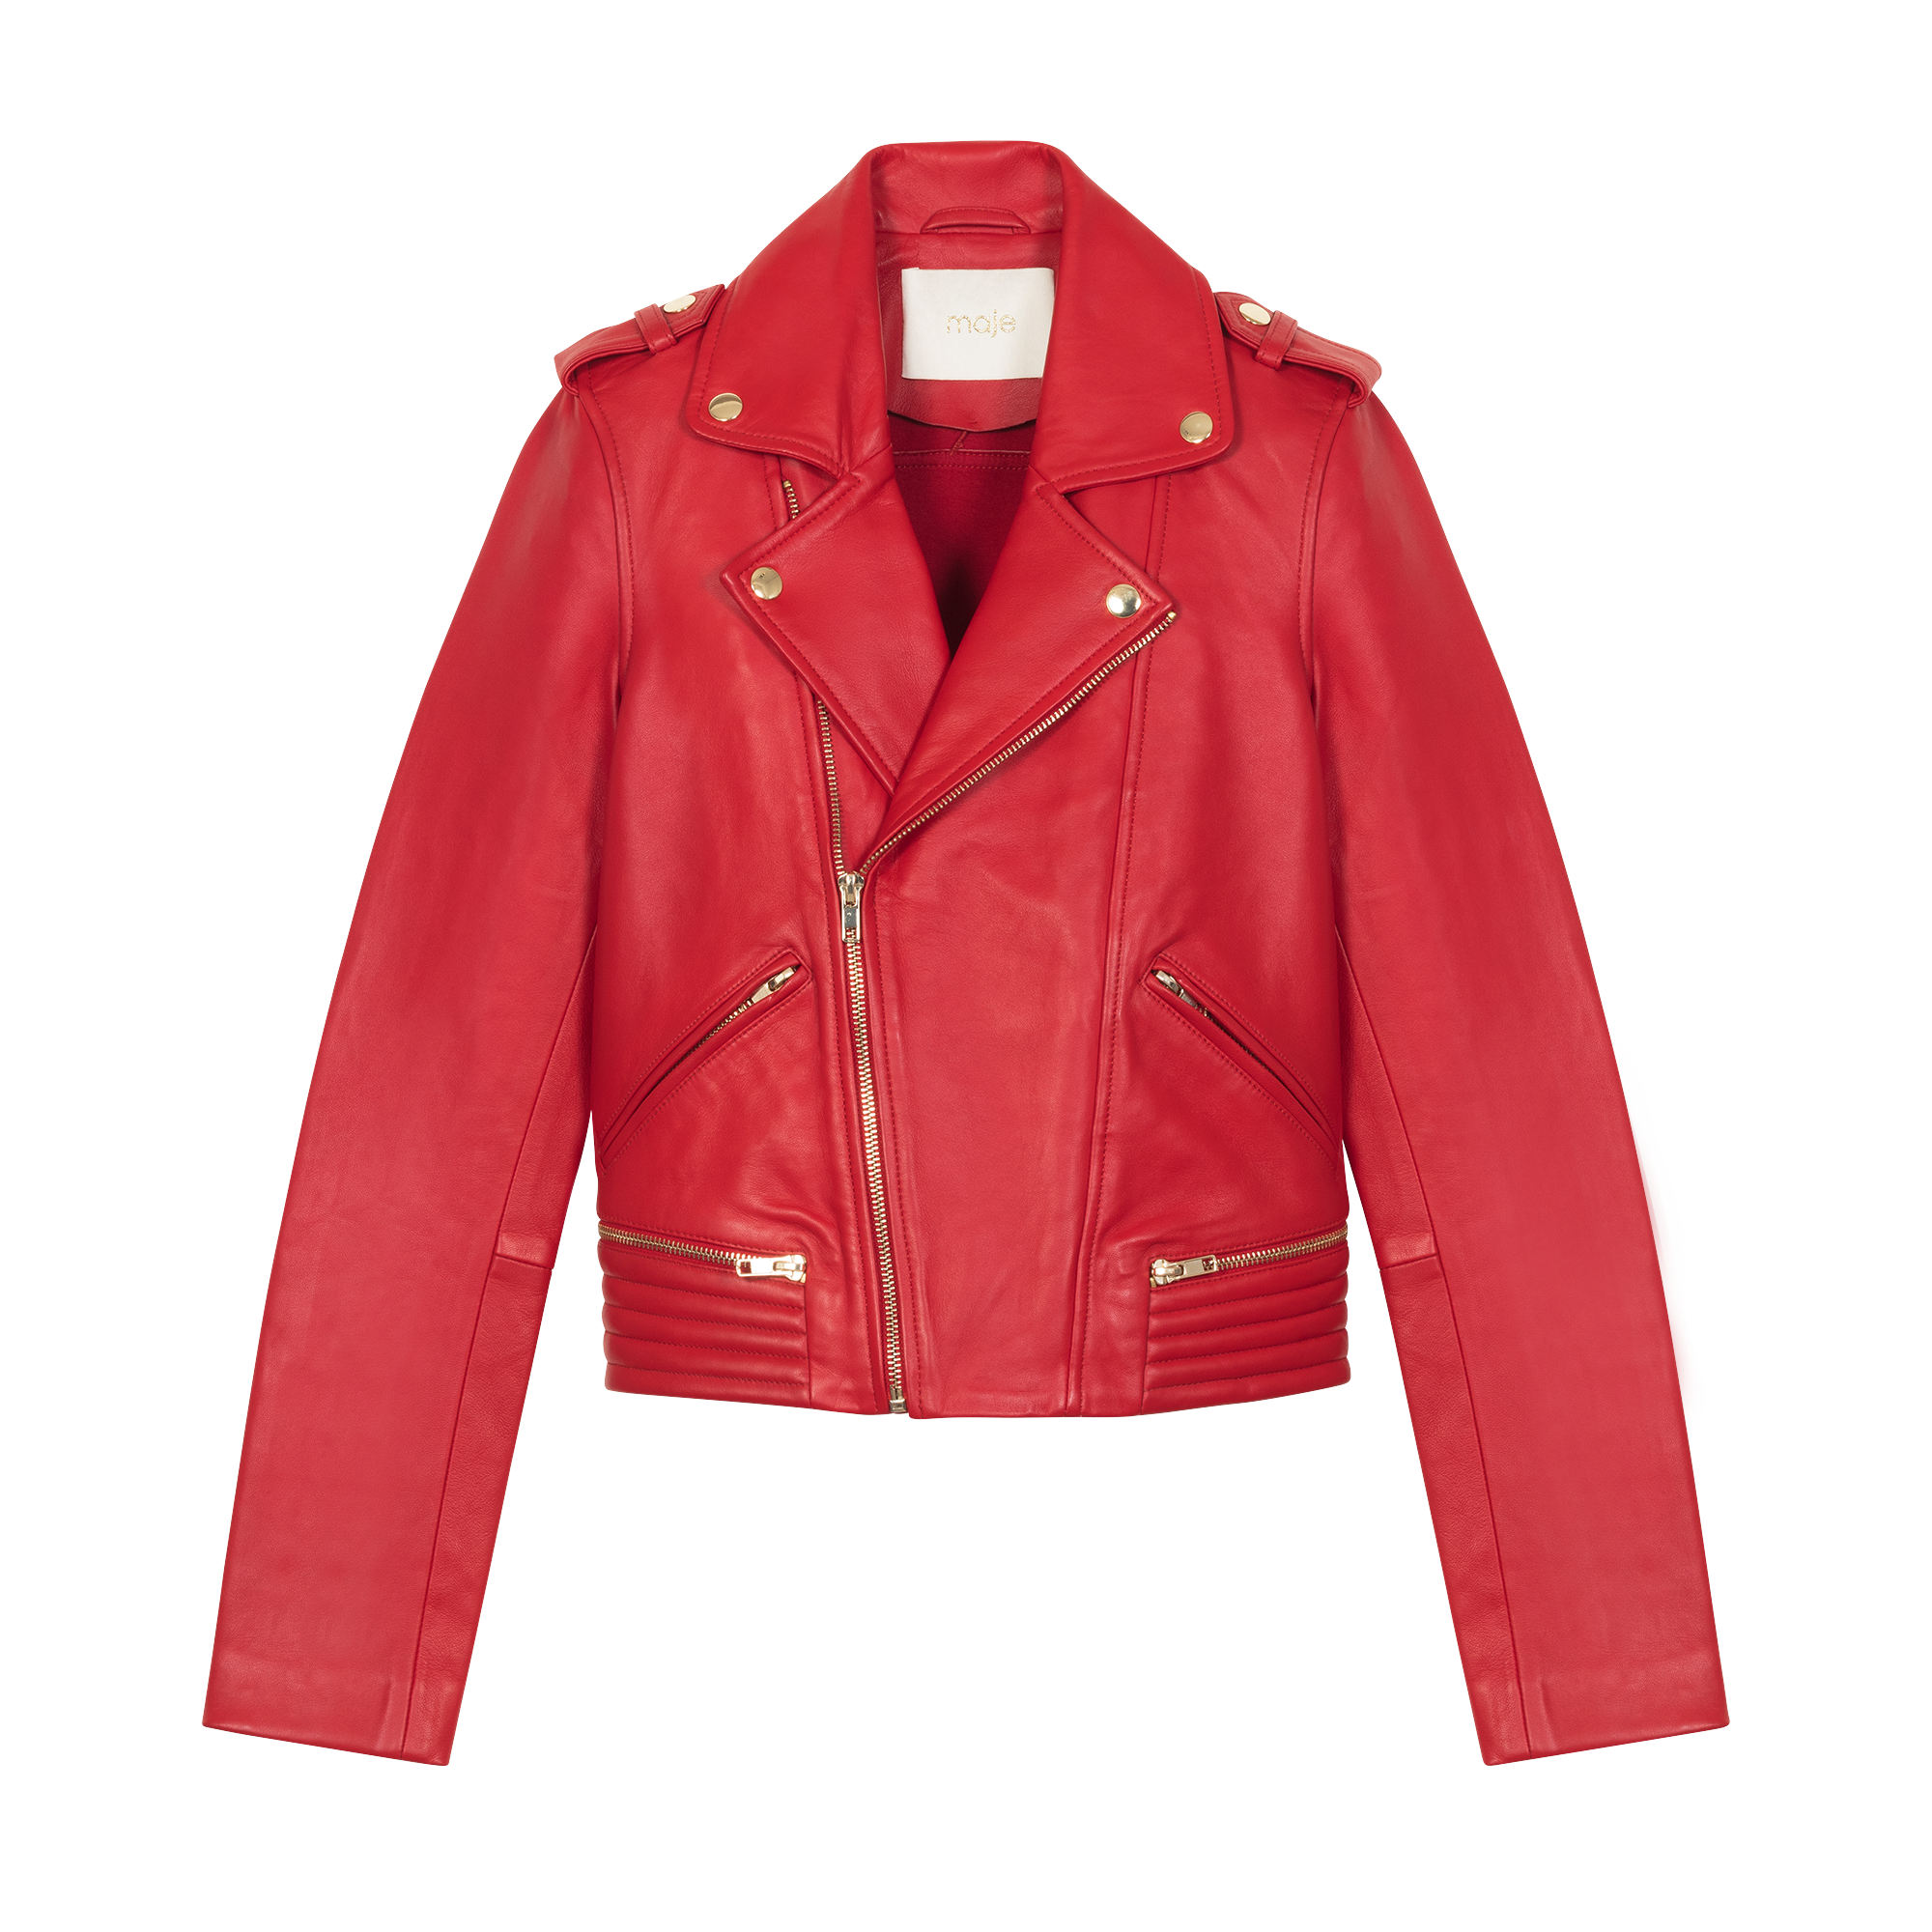 Perfecto leather jacket - Jackets - MAJE